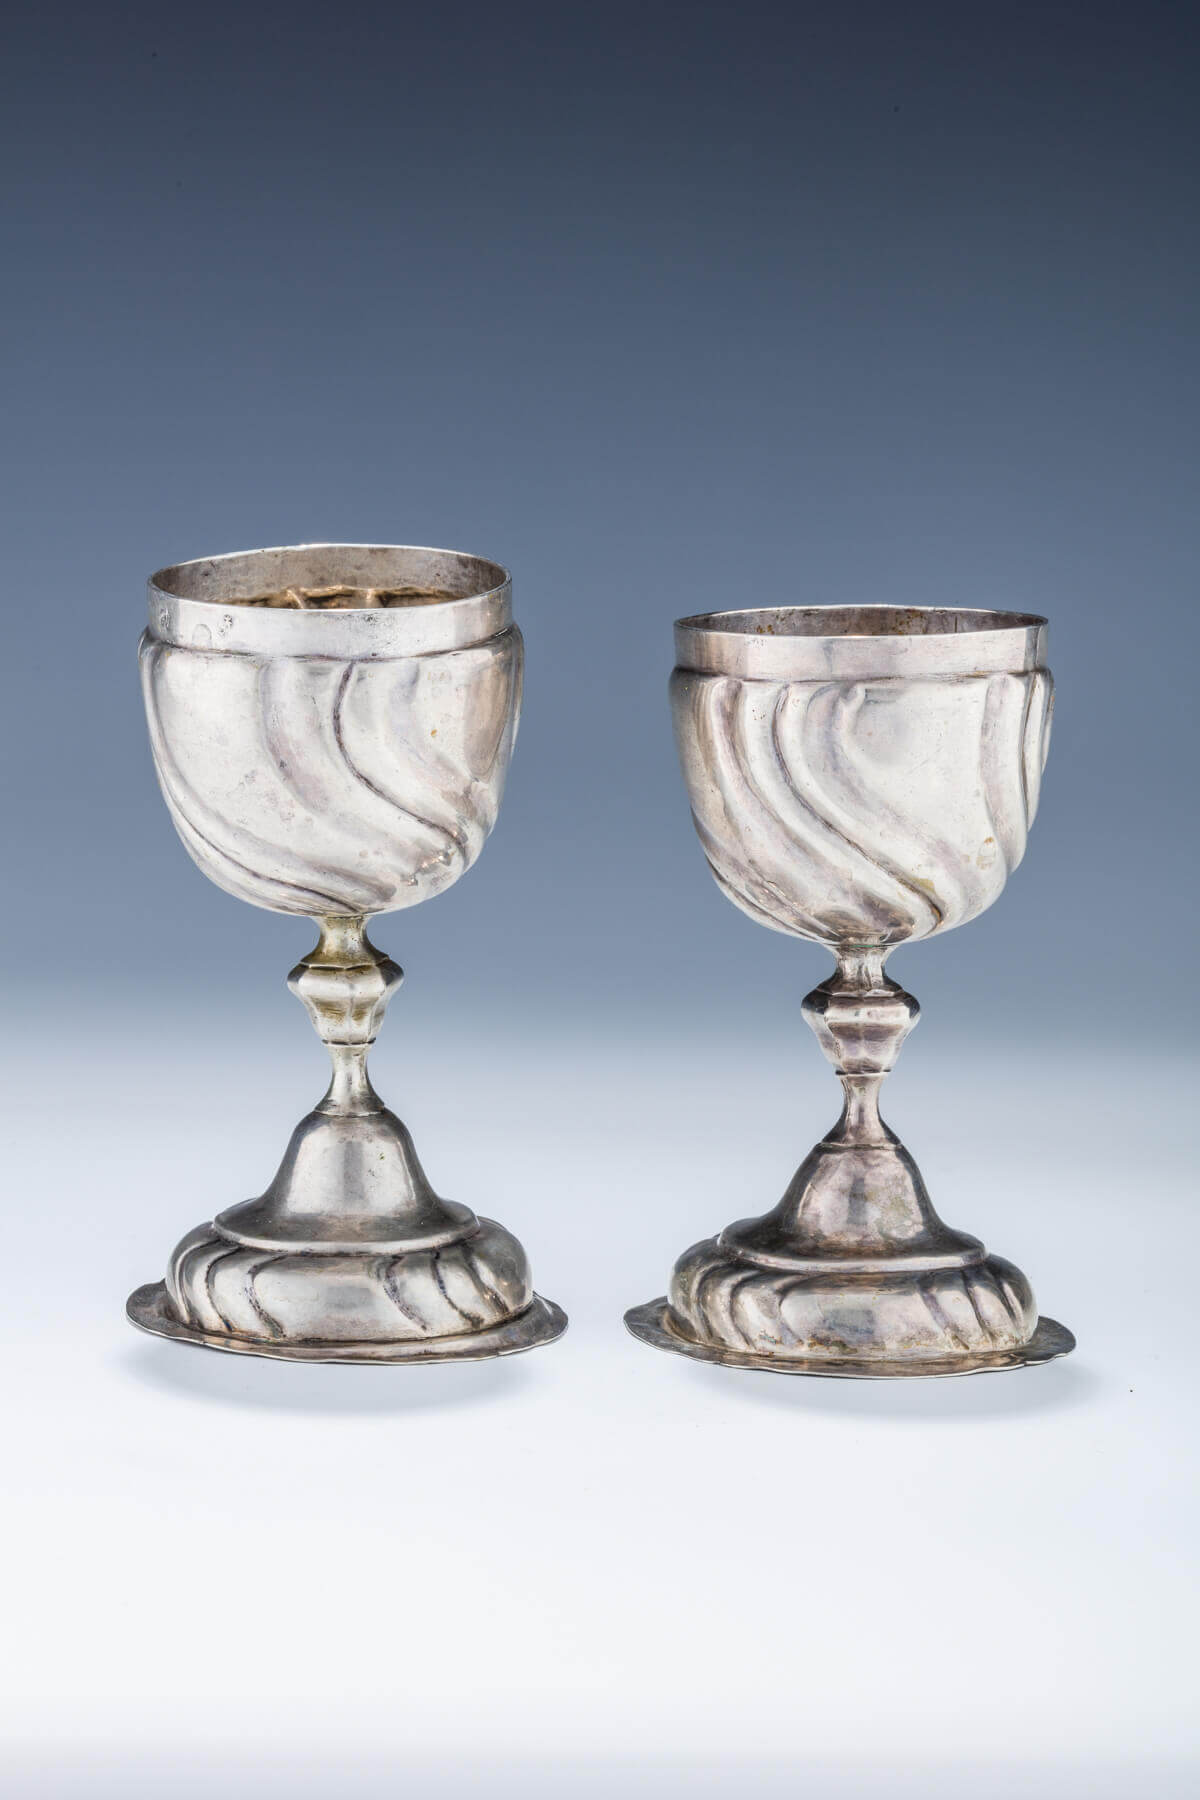 056. A PAIR OF LARGE SILVER KIDDUSH OR WEDDING GOBLETS